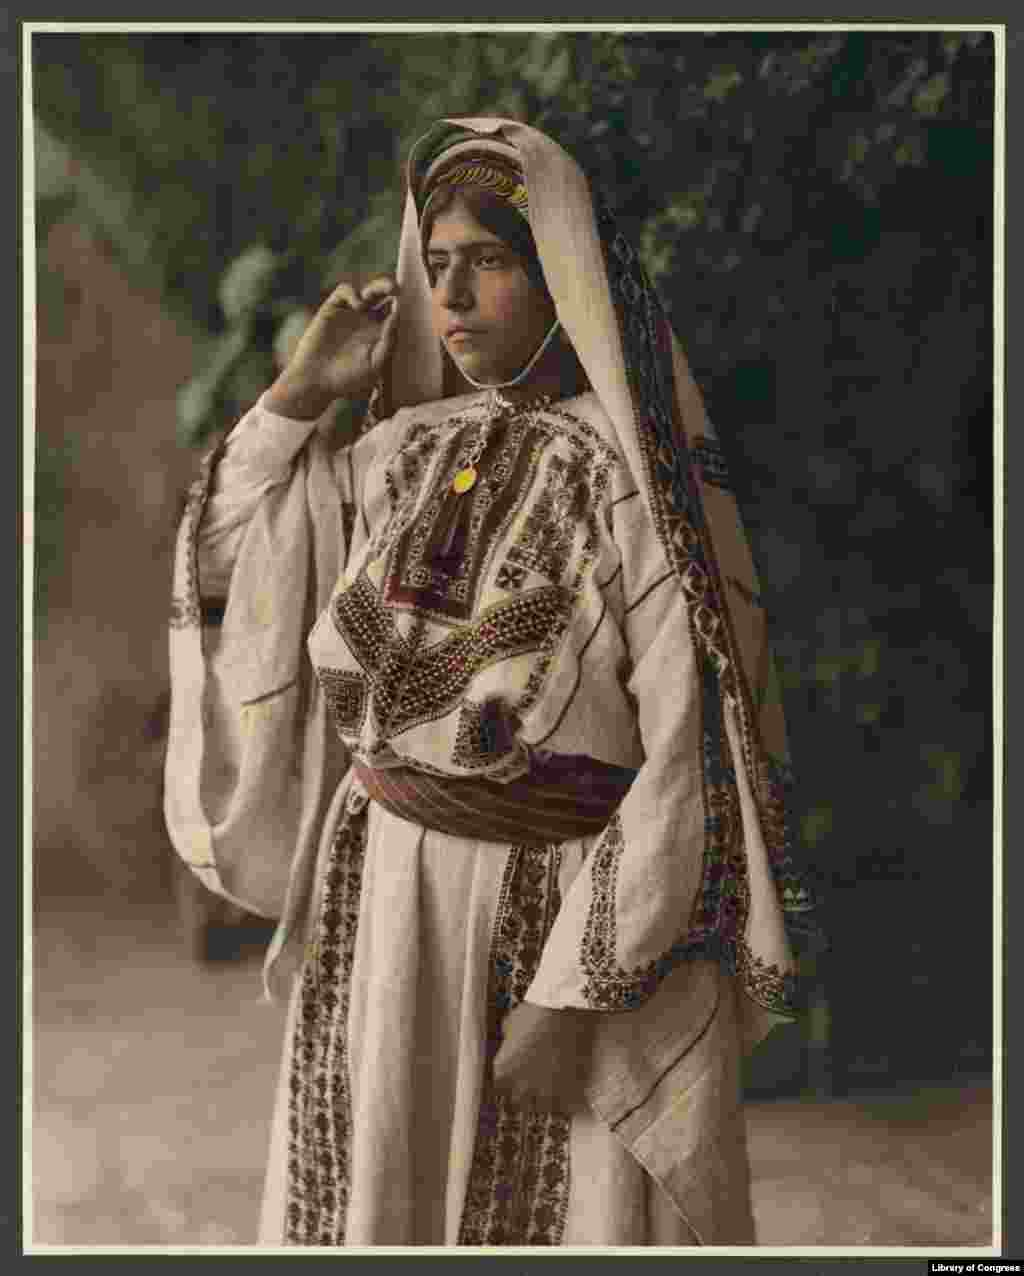 A woman in embroidered costume in Ramallah, now the headquarters of the Palestinian Authority